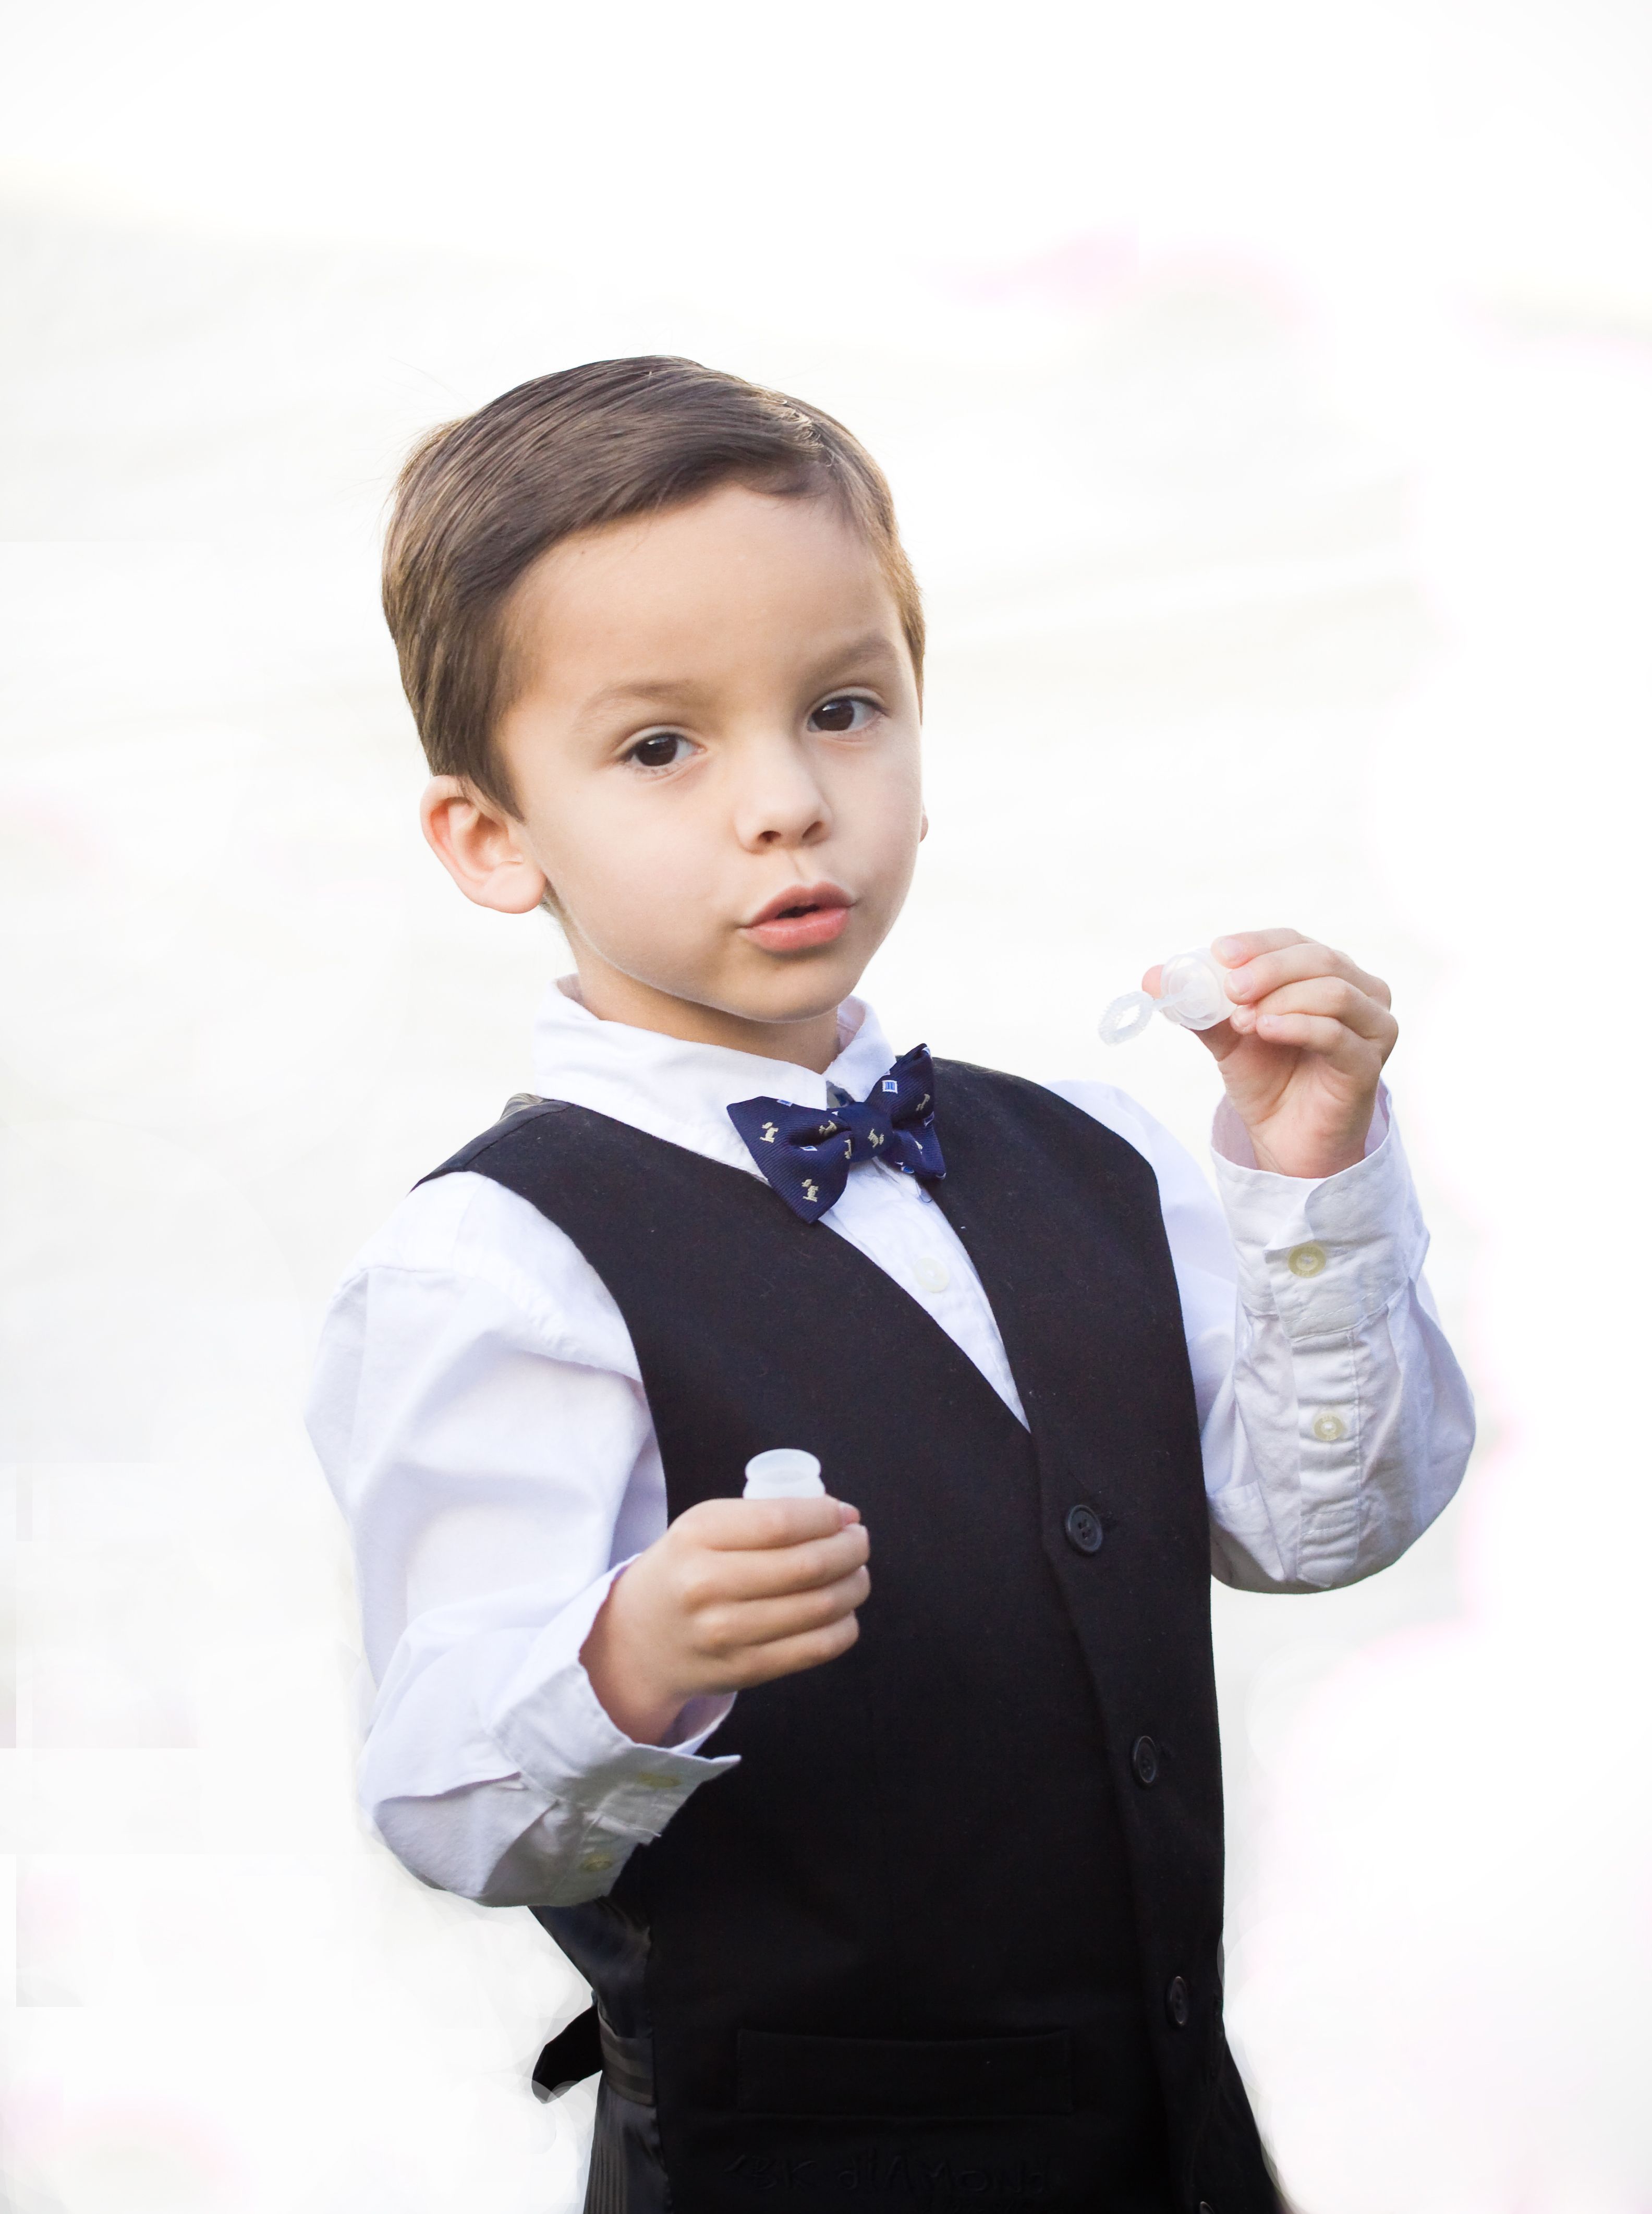 Bubbles, Wedding, Ring bearer, Boy, Cute, Collective perception photography